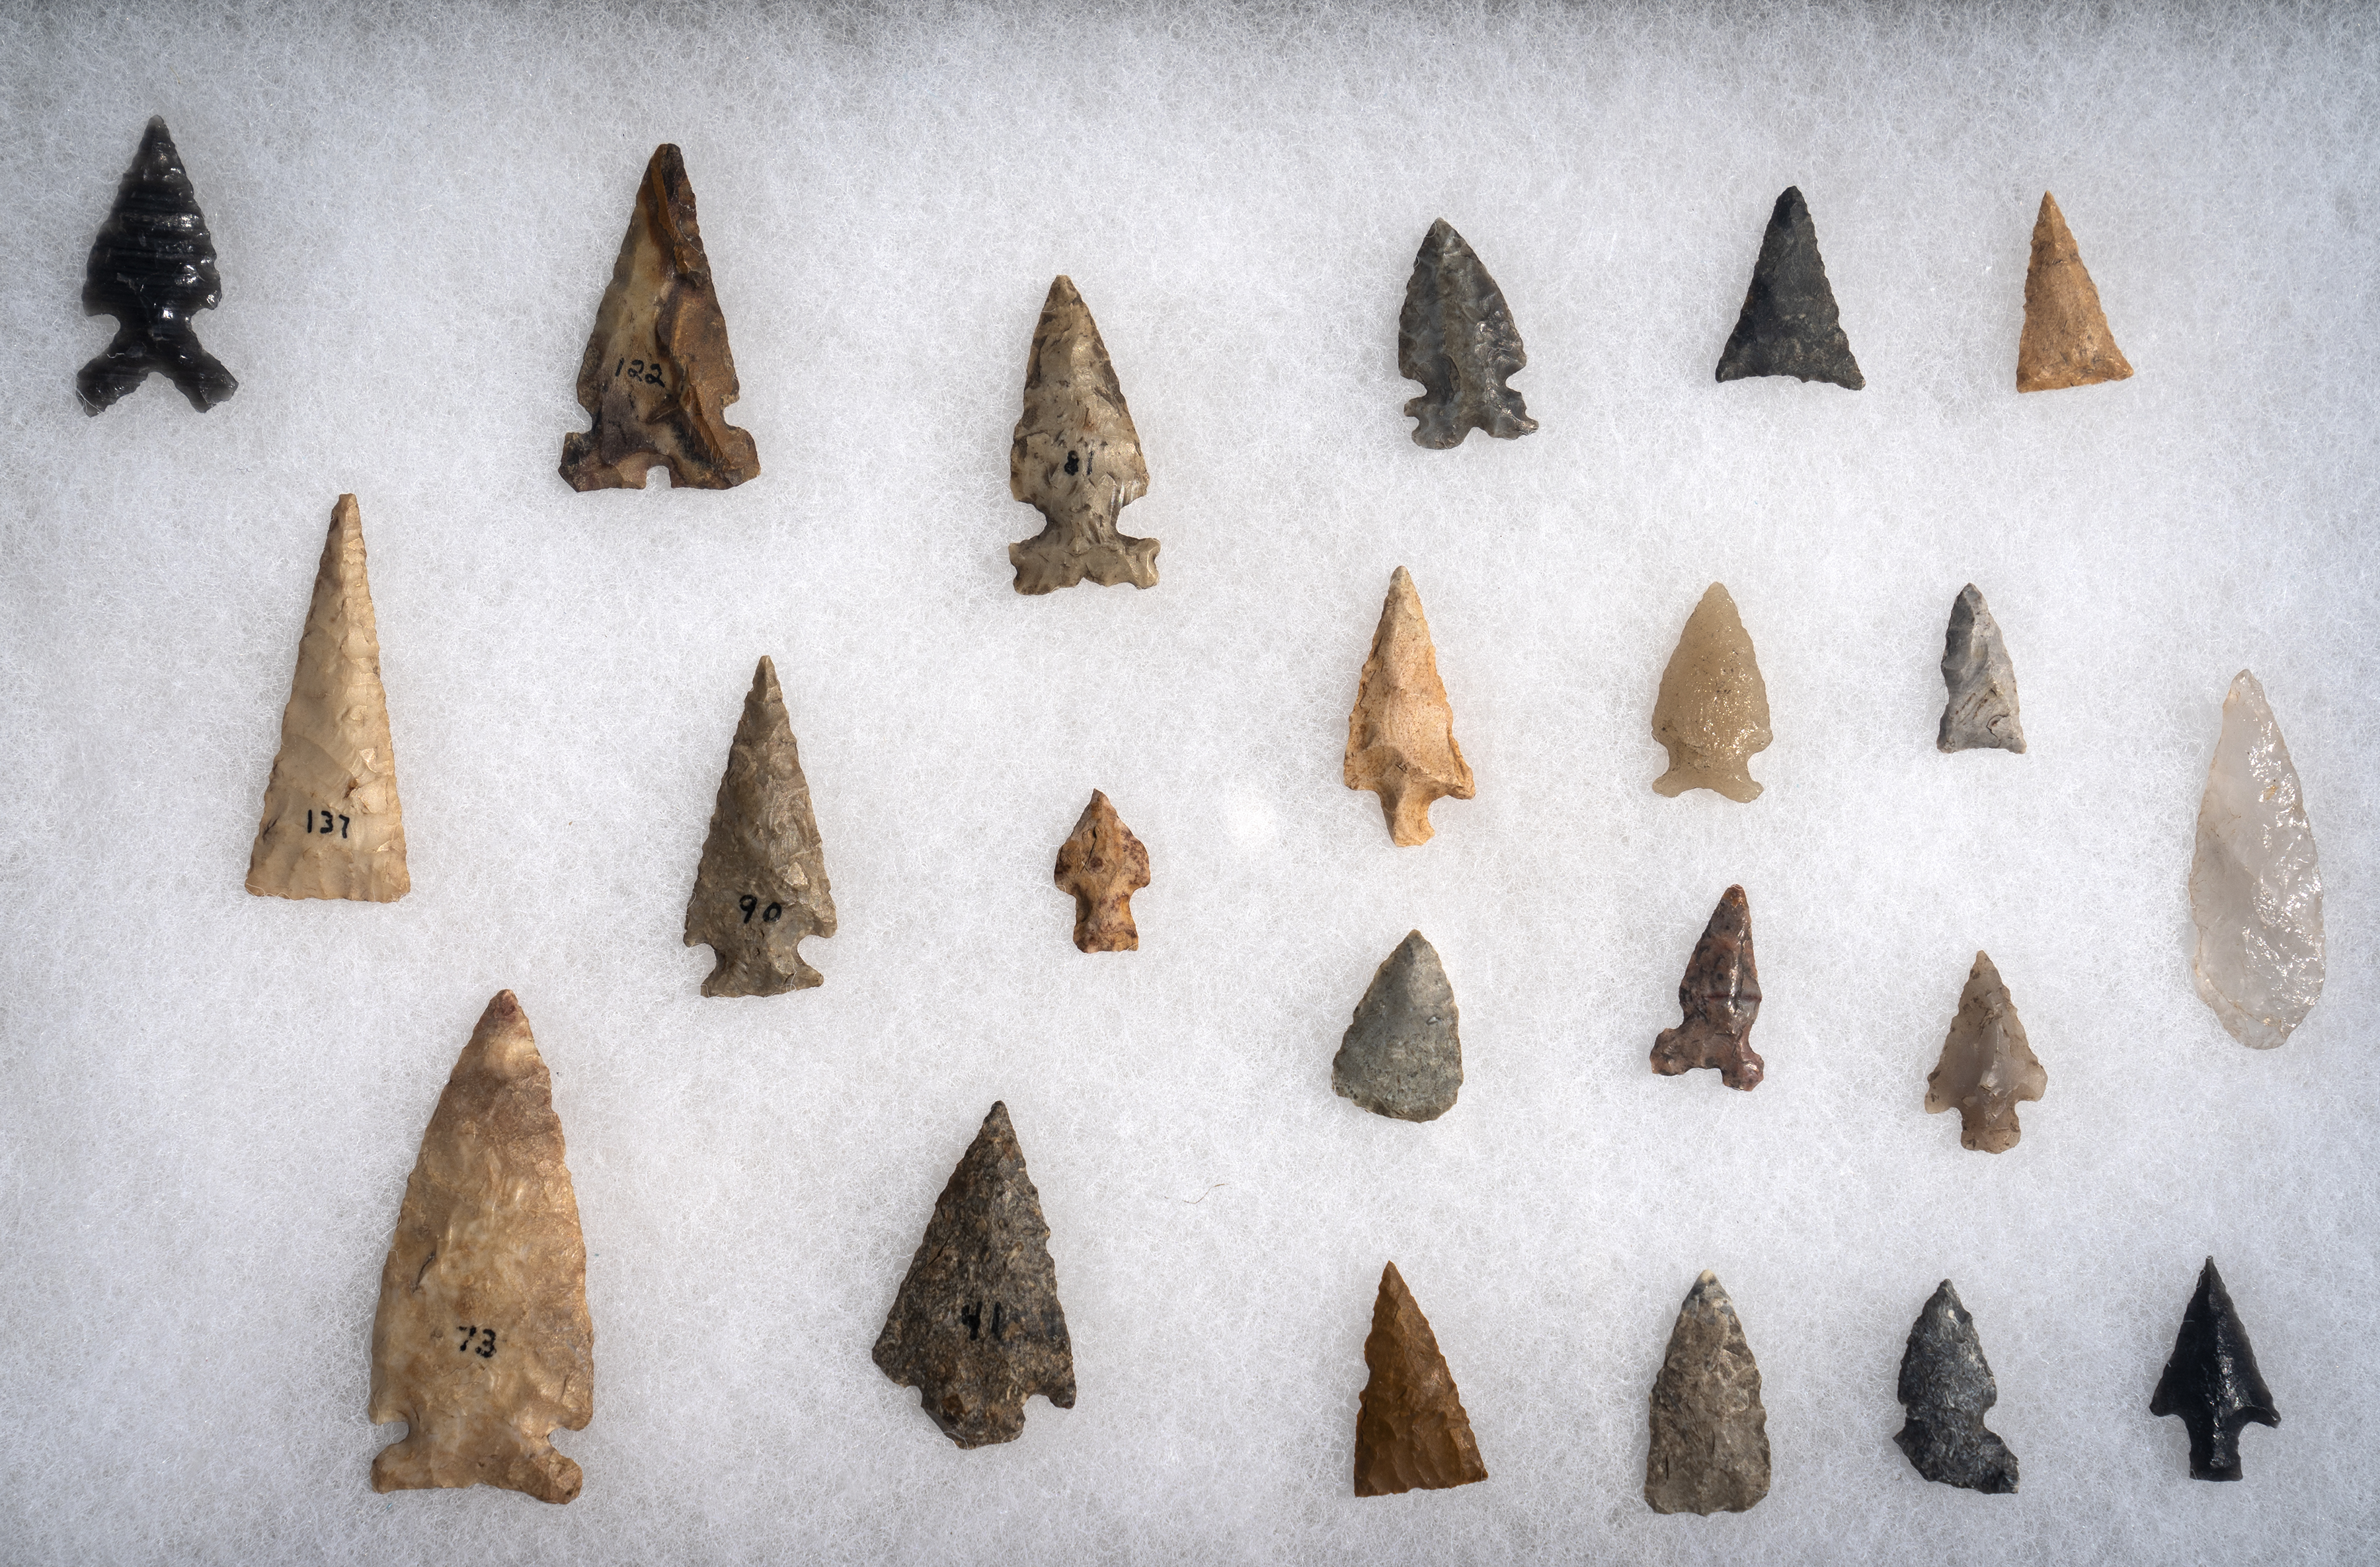 Dakoka and Ojibwe arrowheads and fishing point artifacts found in Minnesota. They are located at Hocokata Ti, a cultural center and gathering space for the Shakopee Mdewakanton Sioux Community.